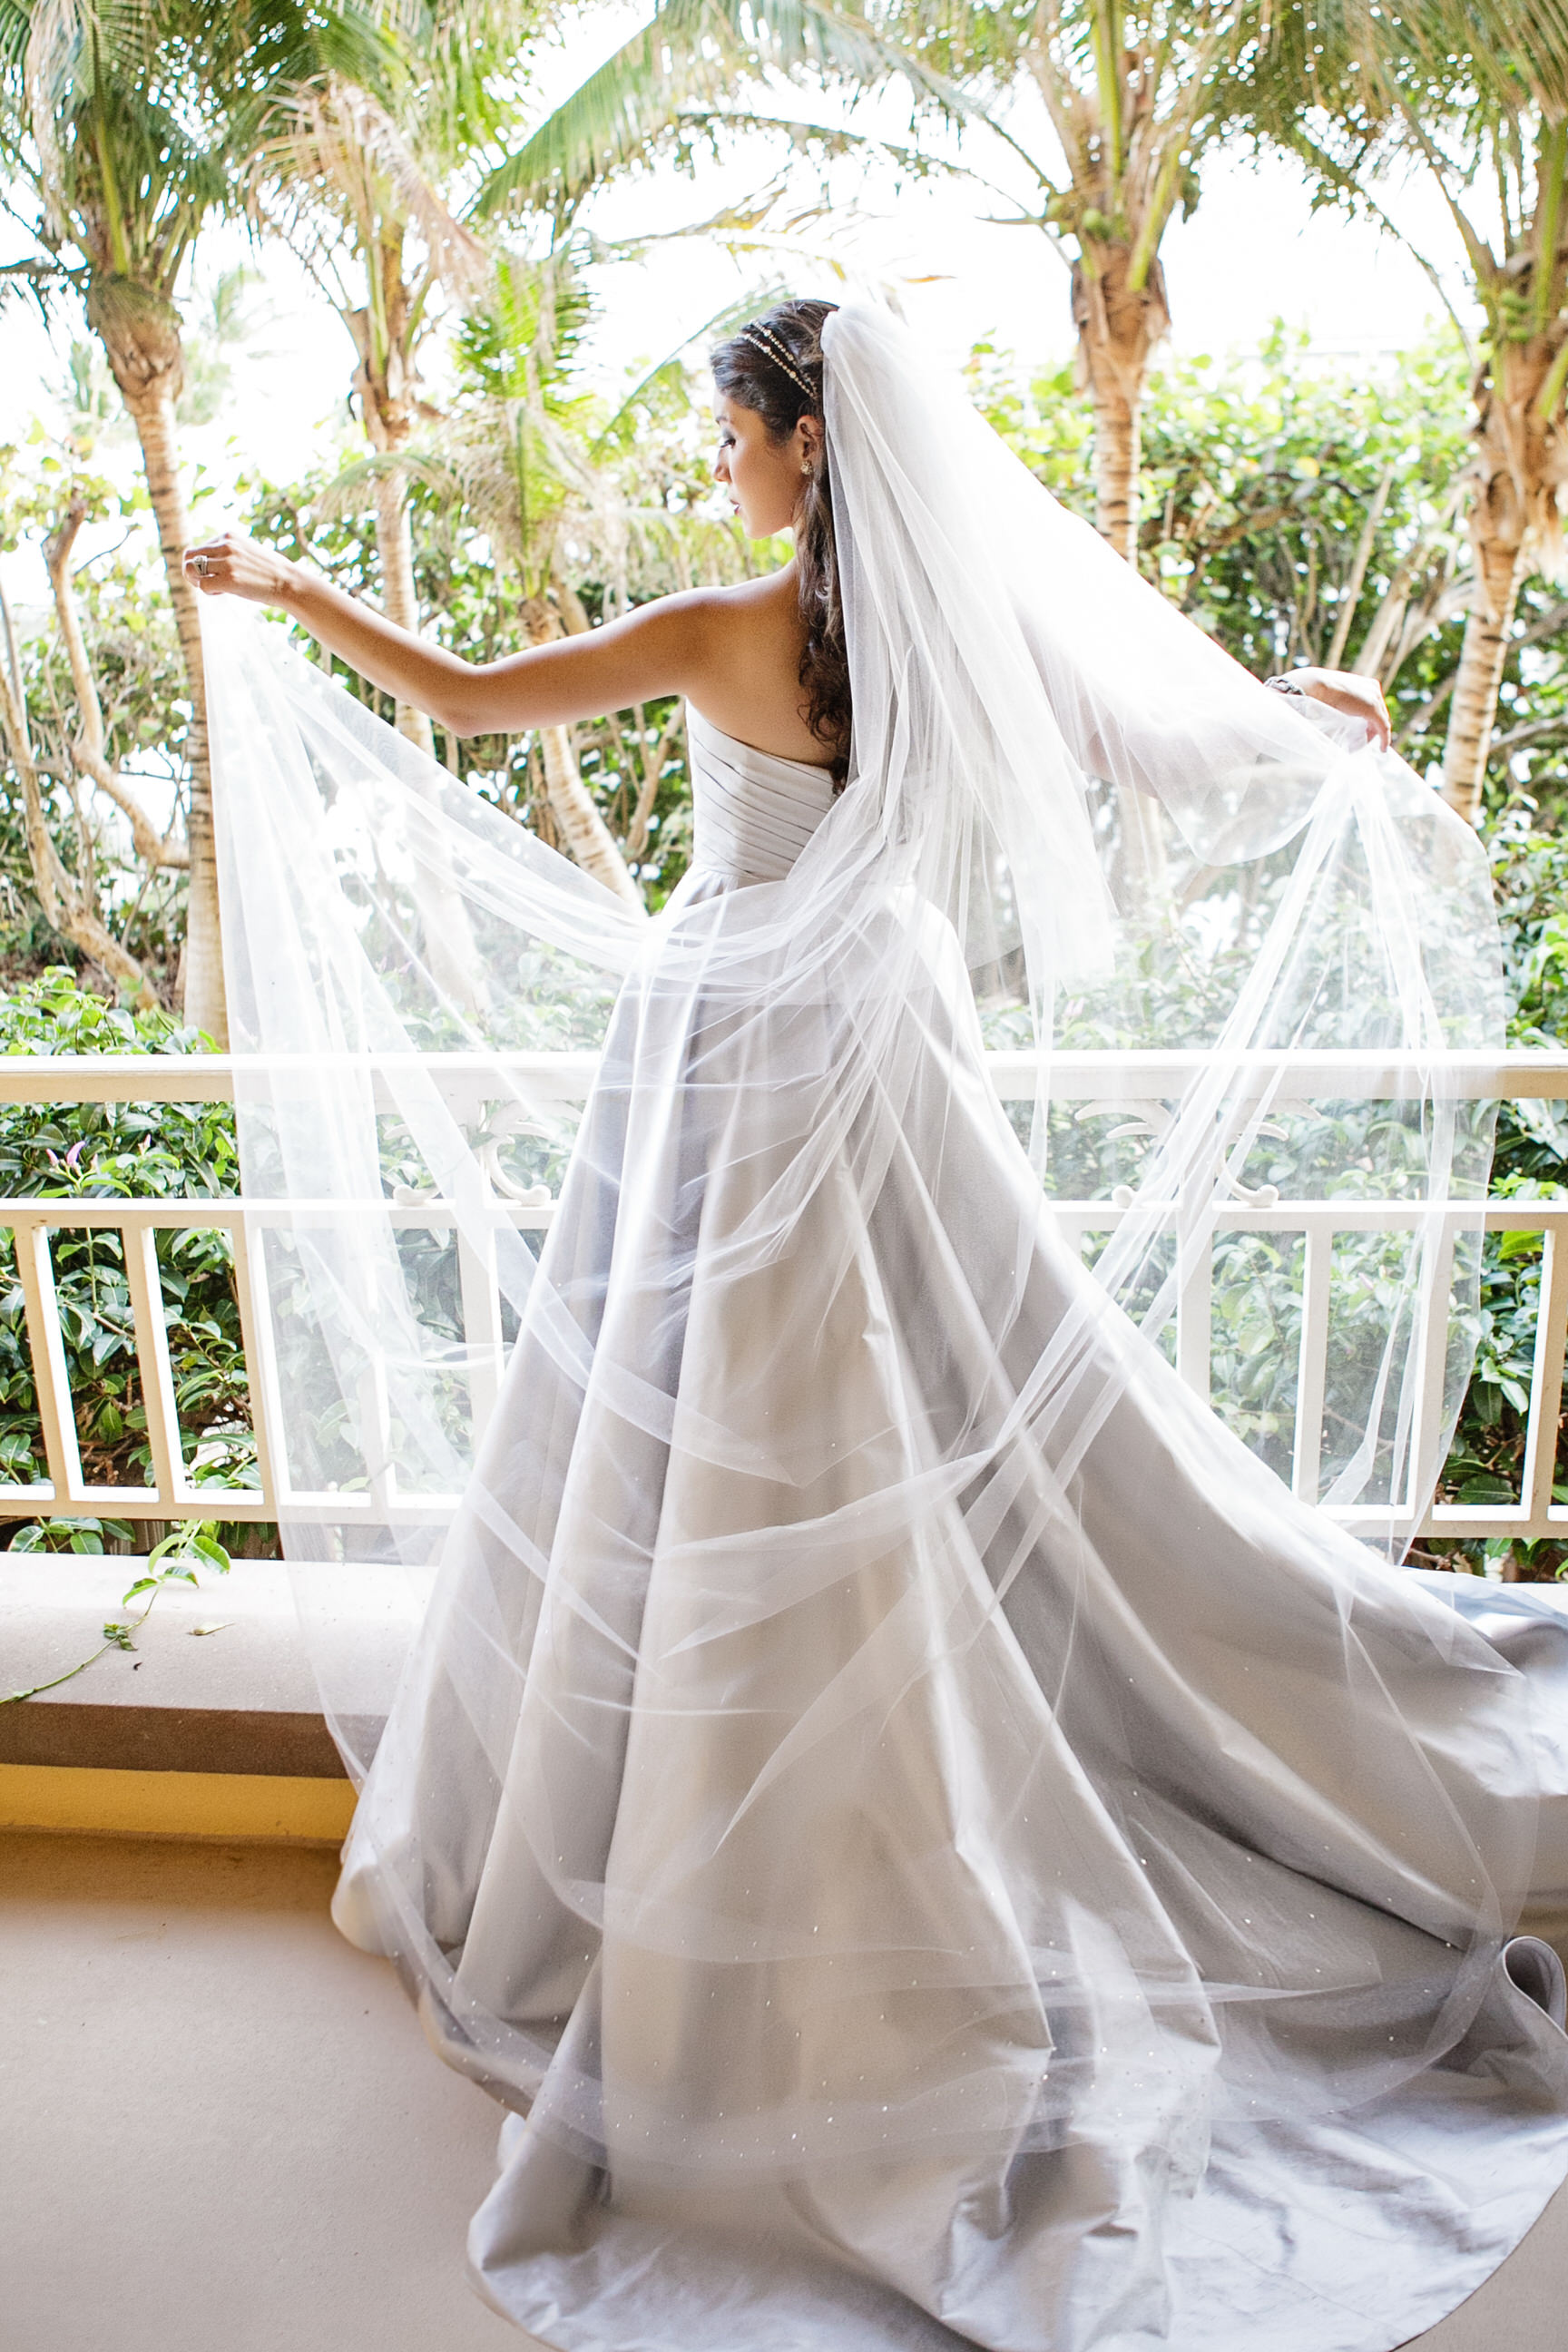 06 Ramona Keveza Bridal Destination Wedding Planner Palm Beach Wedding.jpg